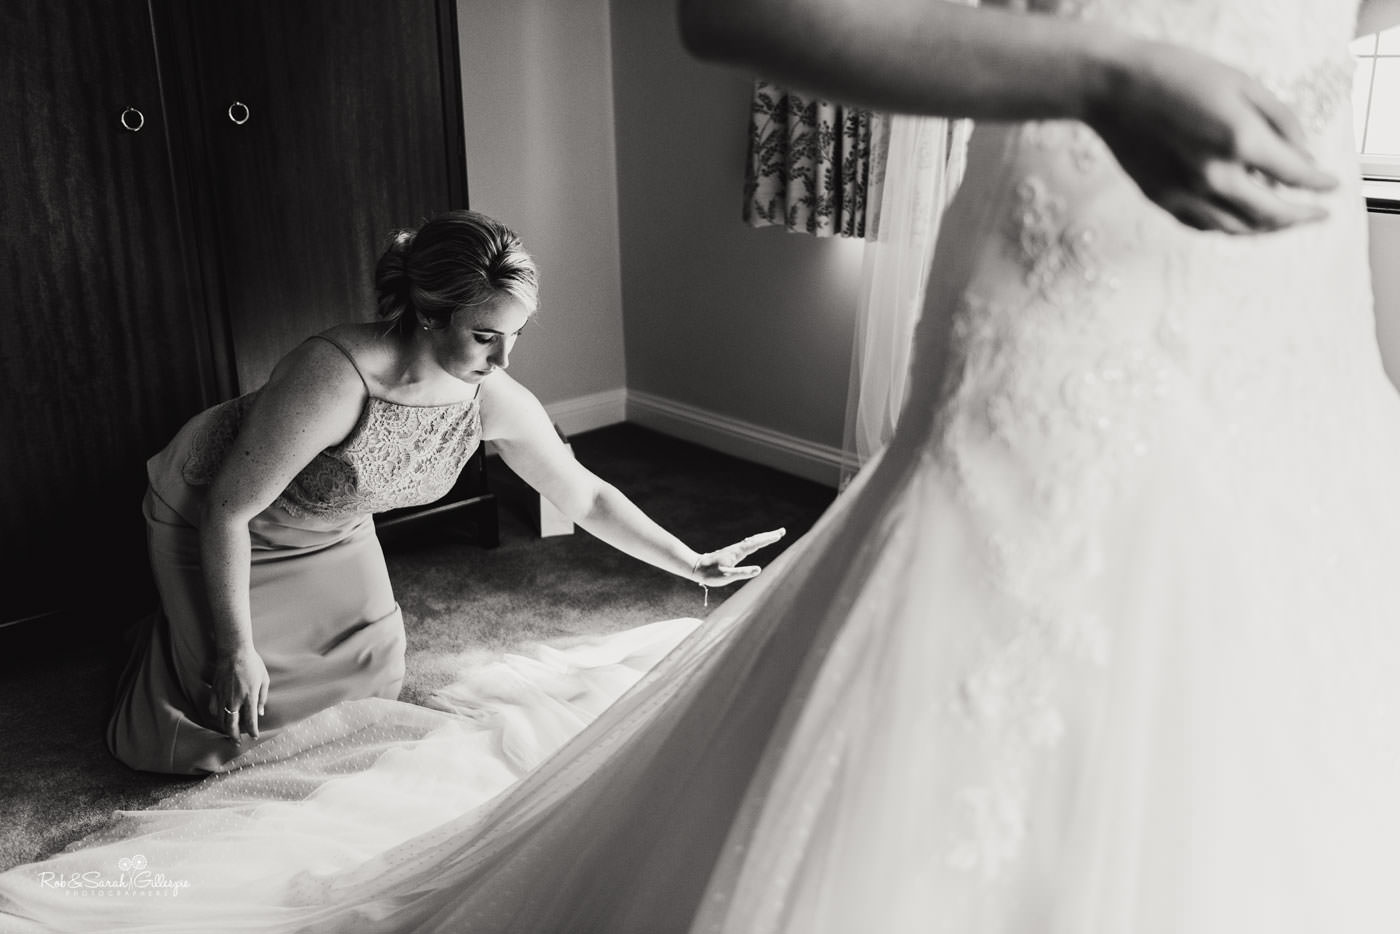 Bridesmaids helps bride into her wedding dress